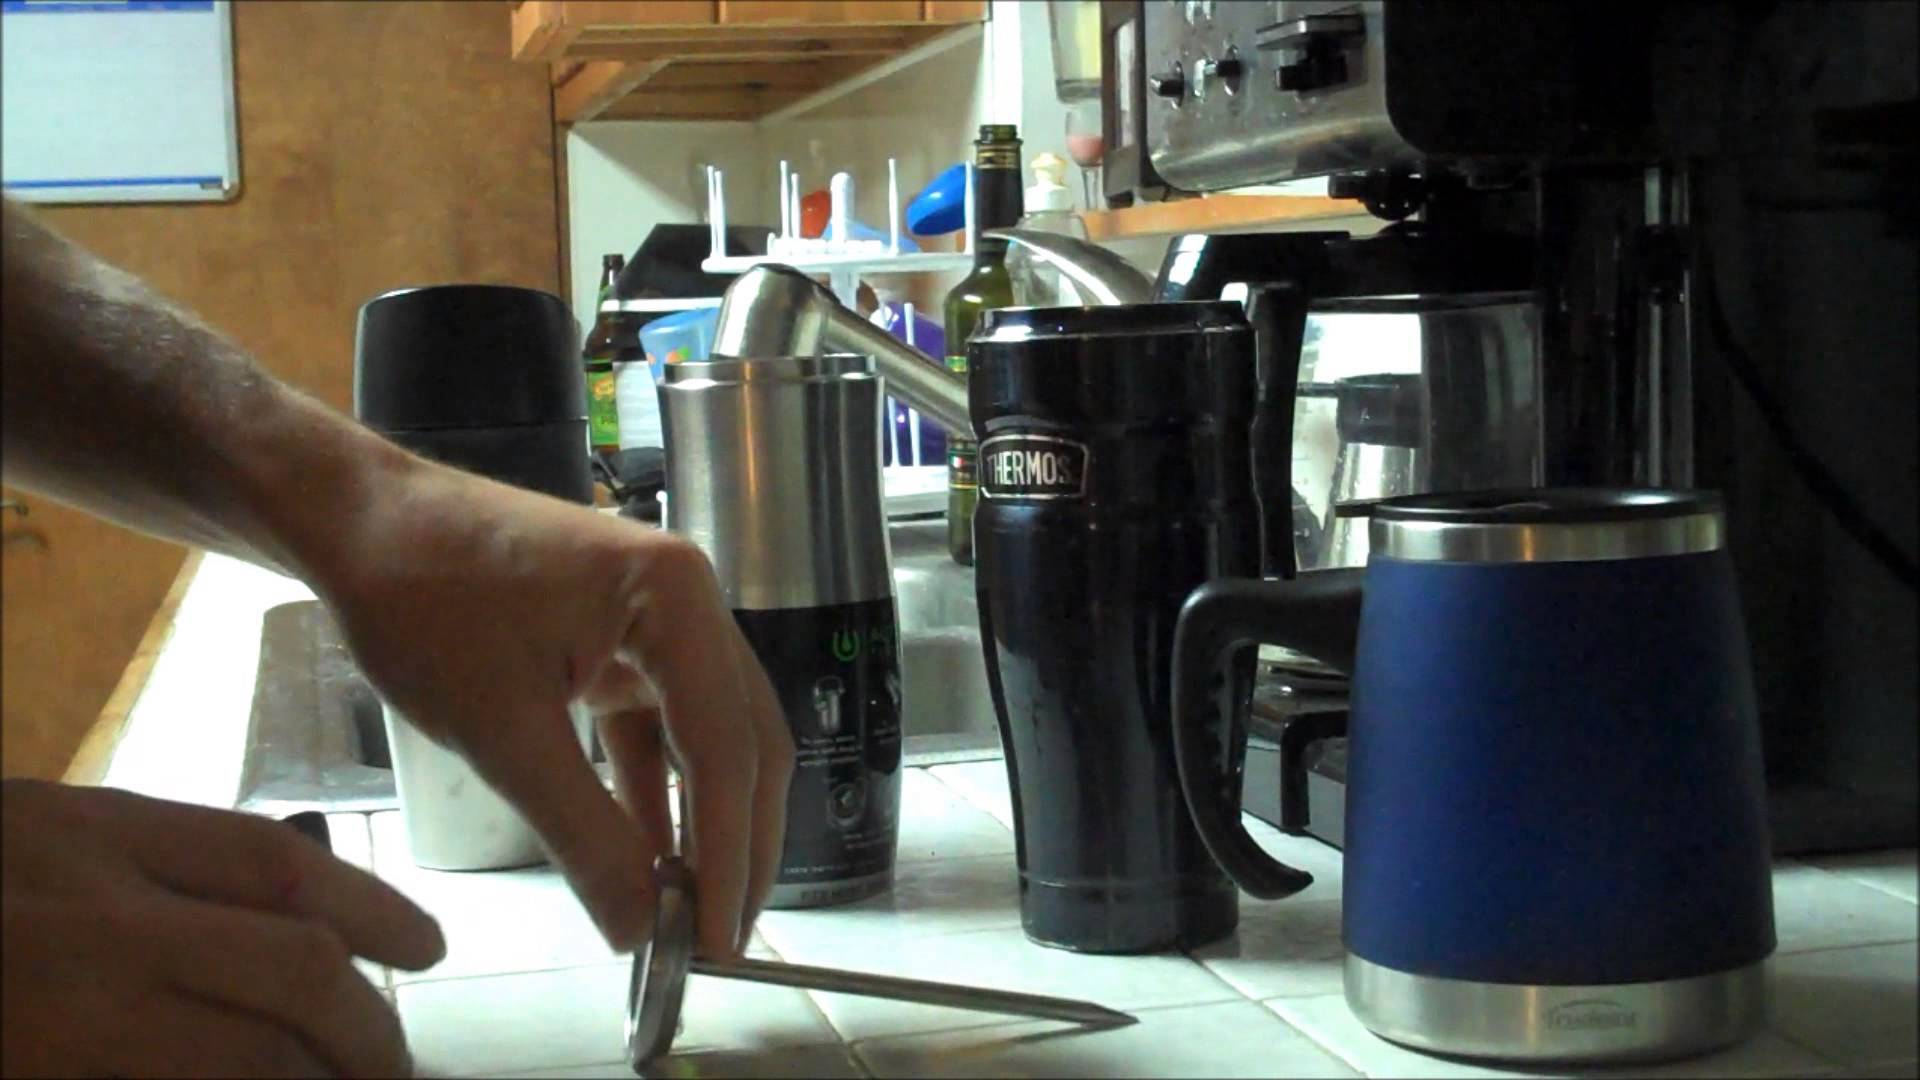 Thermos Stainless Steel King 16 Ounce Leak Proof Travel